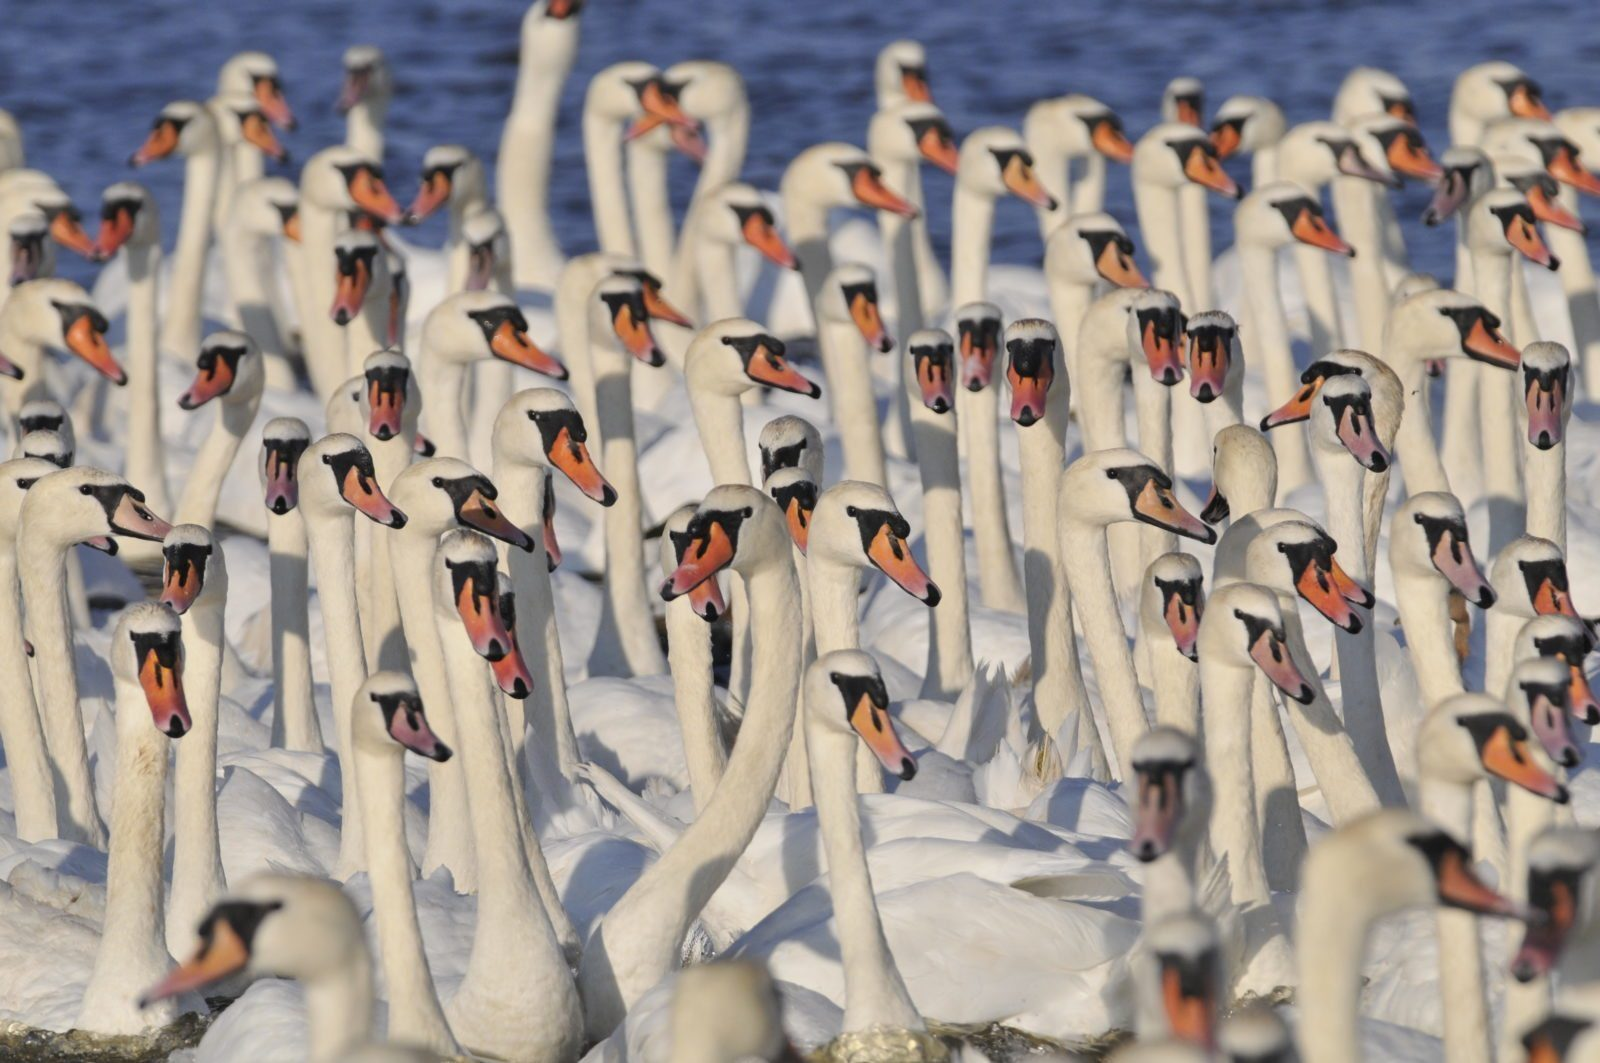 A large ample size of white Swannery denizens